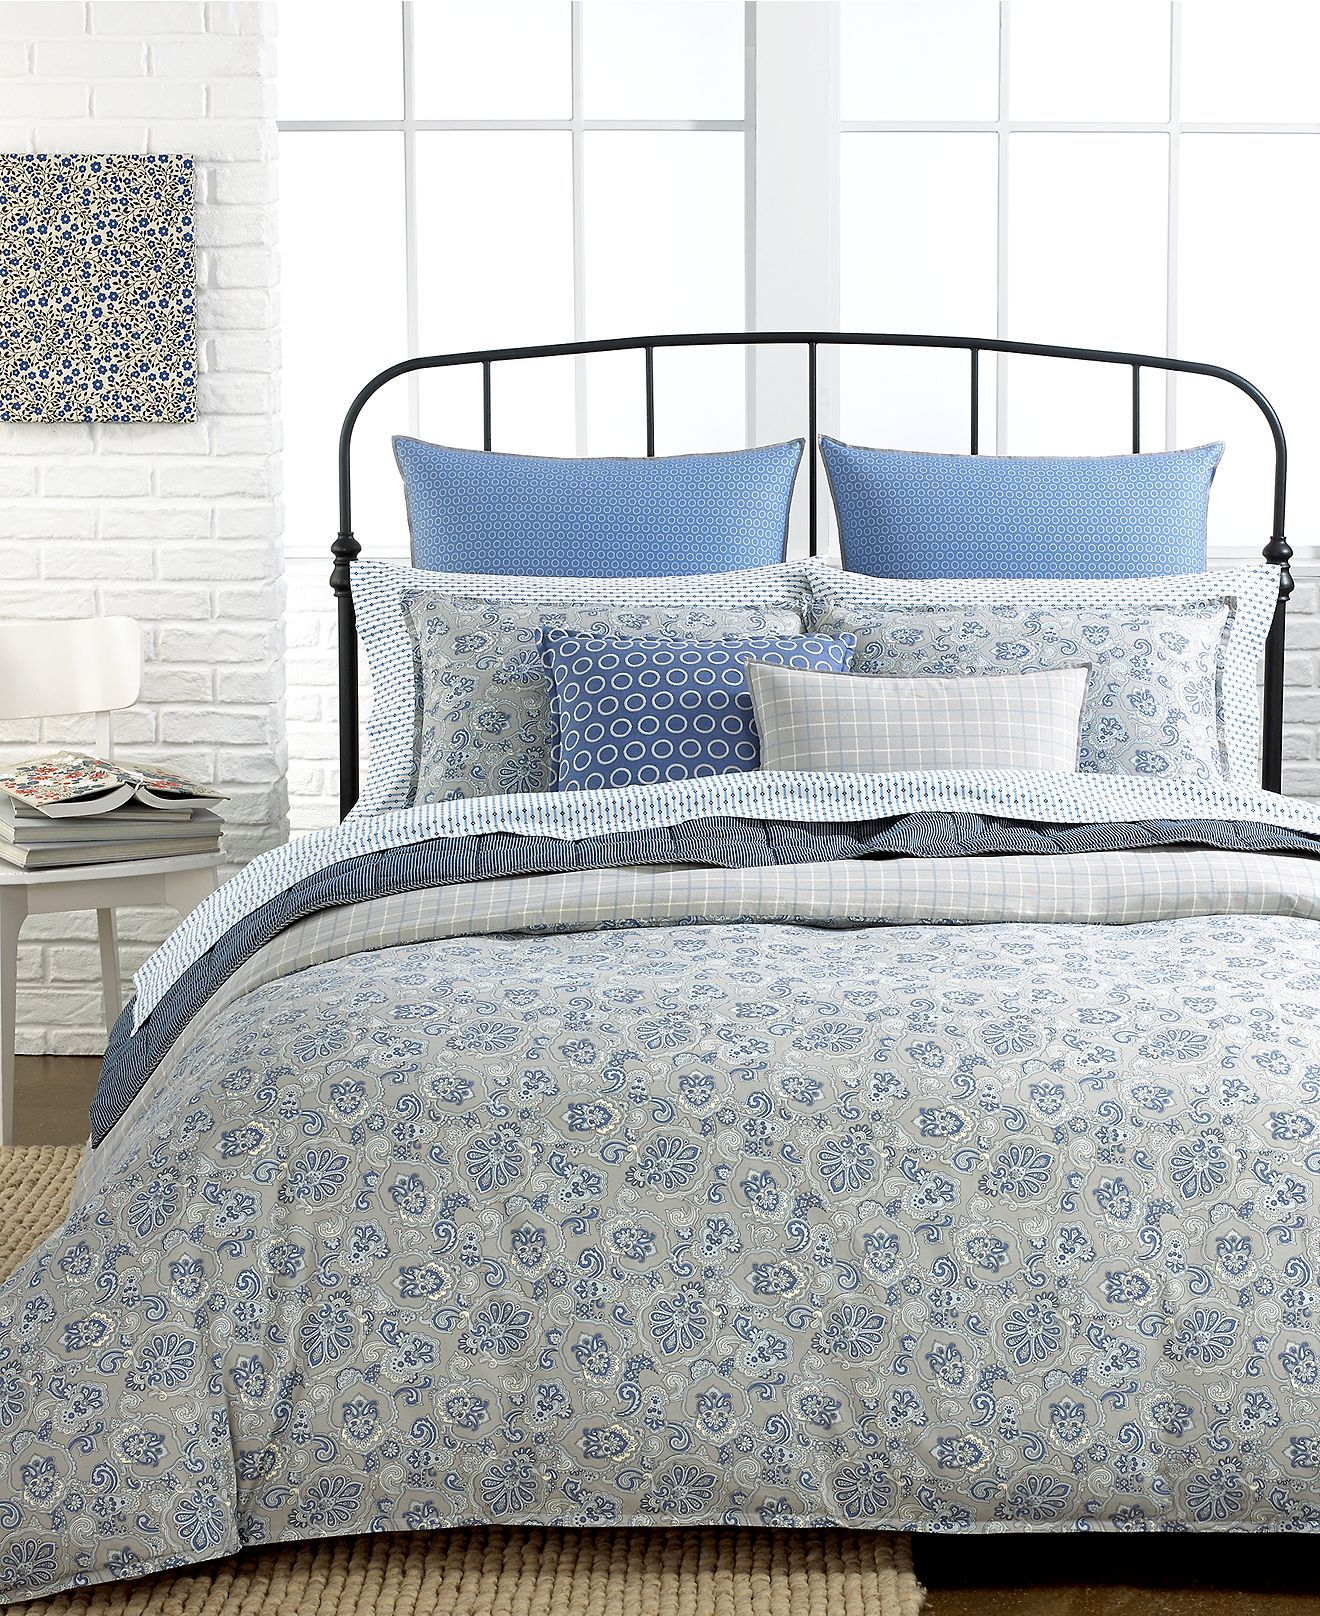 Tommy Hilfiger Bedding, Princeton Paisley Collection - Bedding Collections - Bed & Bath - Macy's